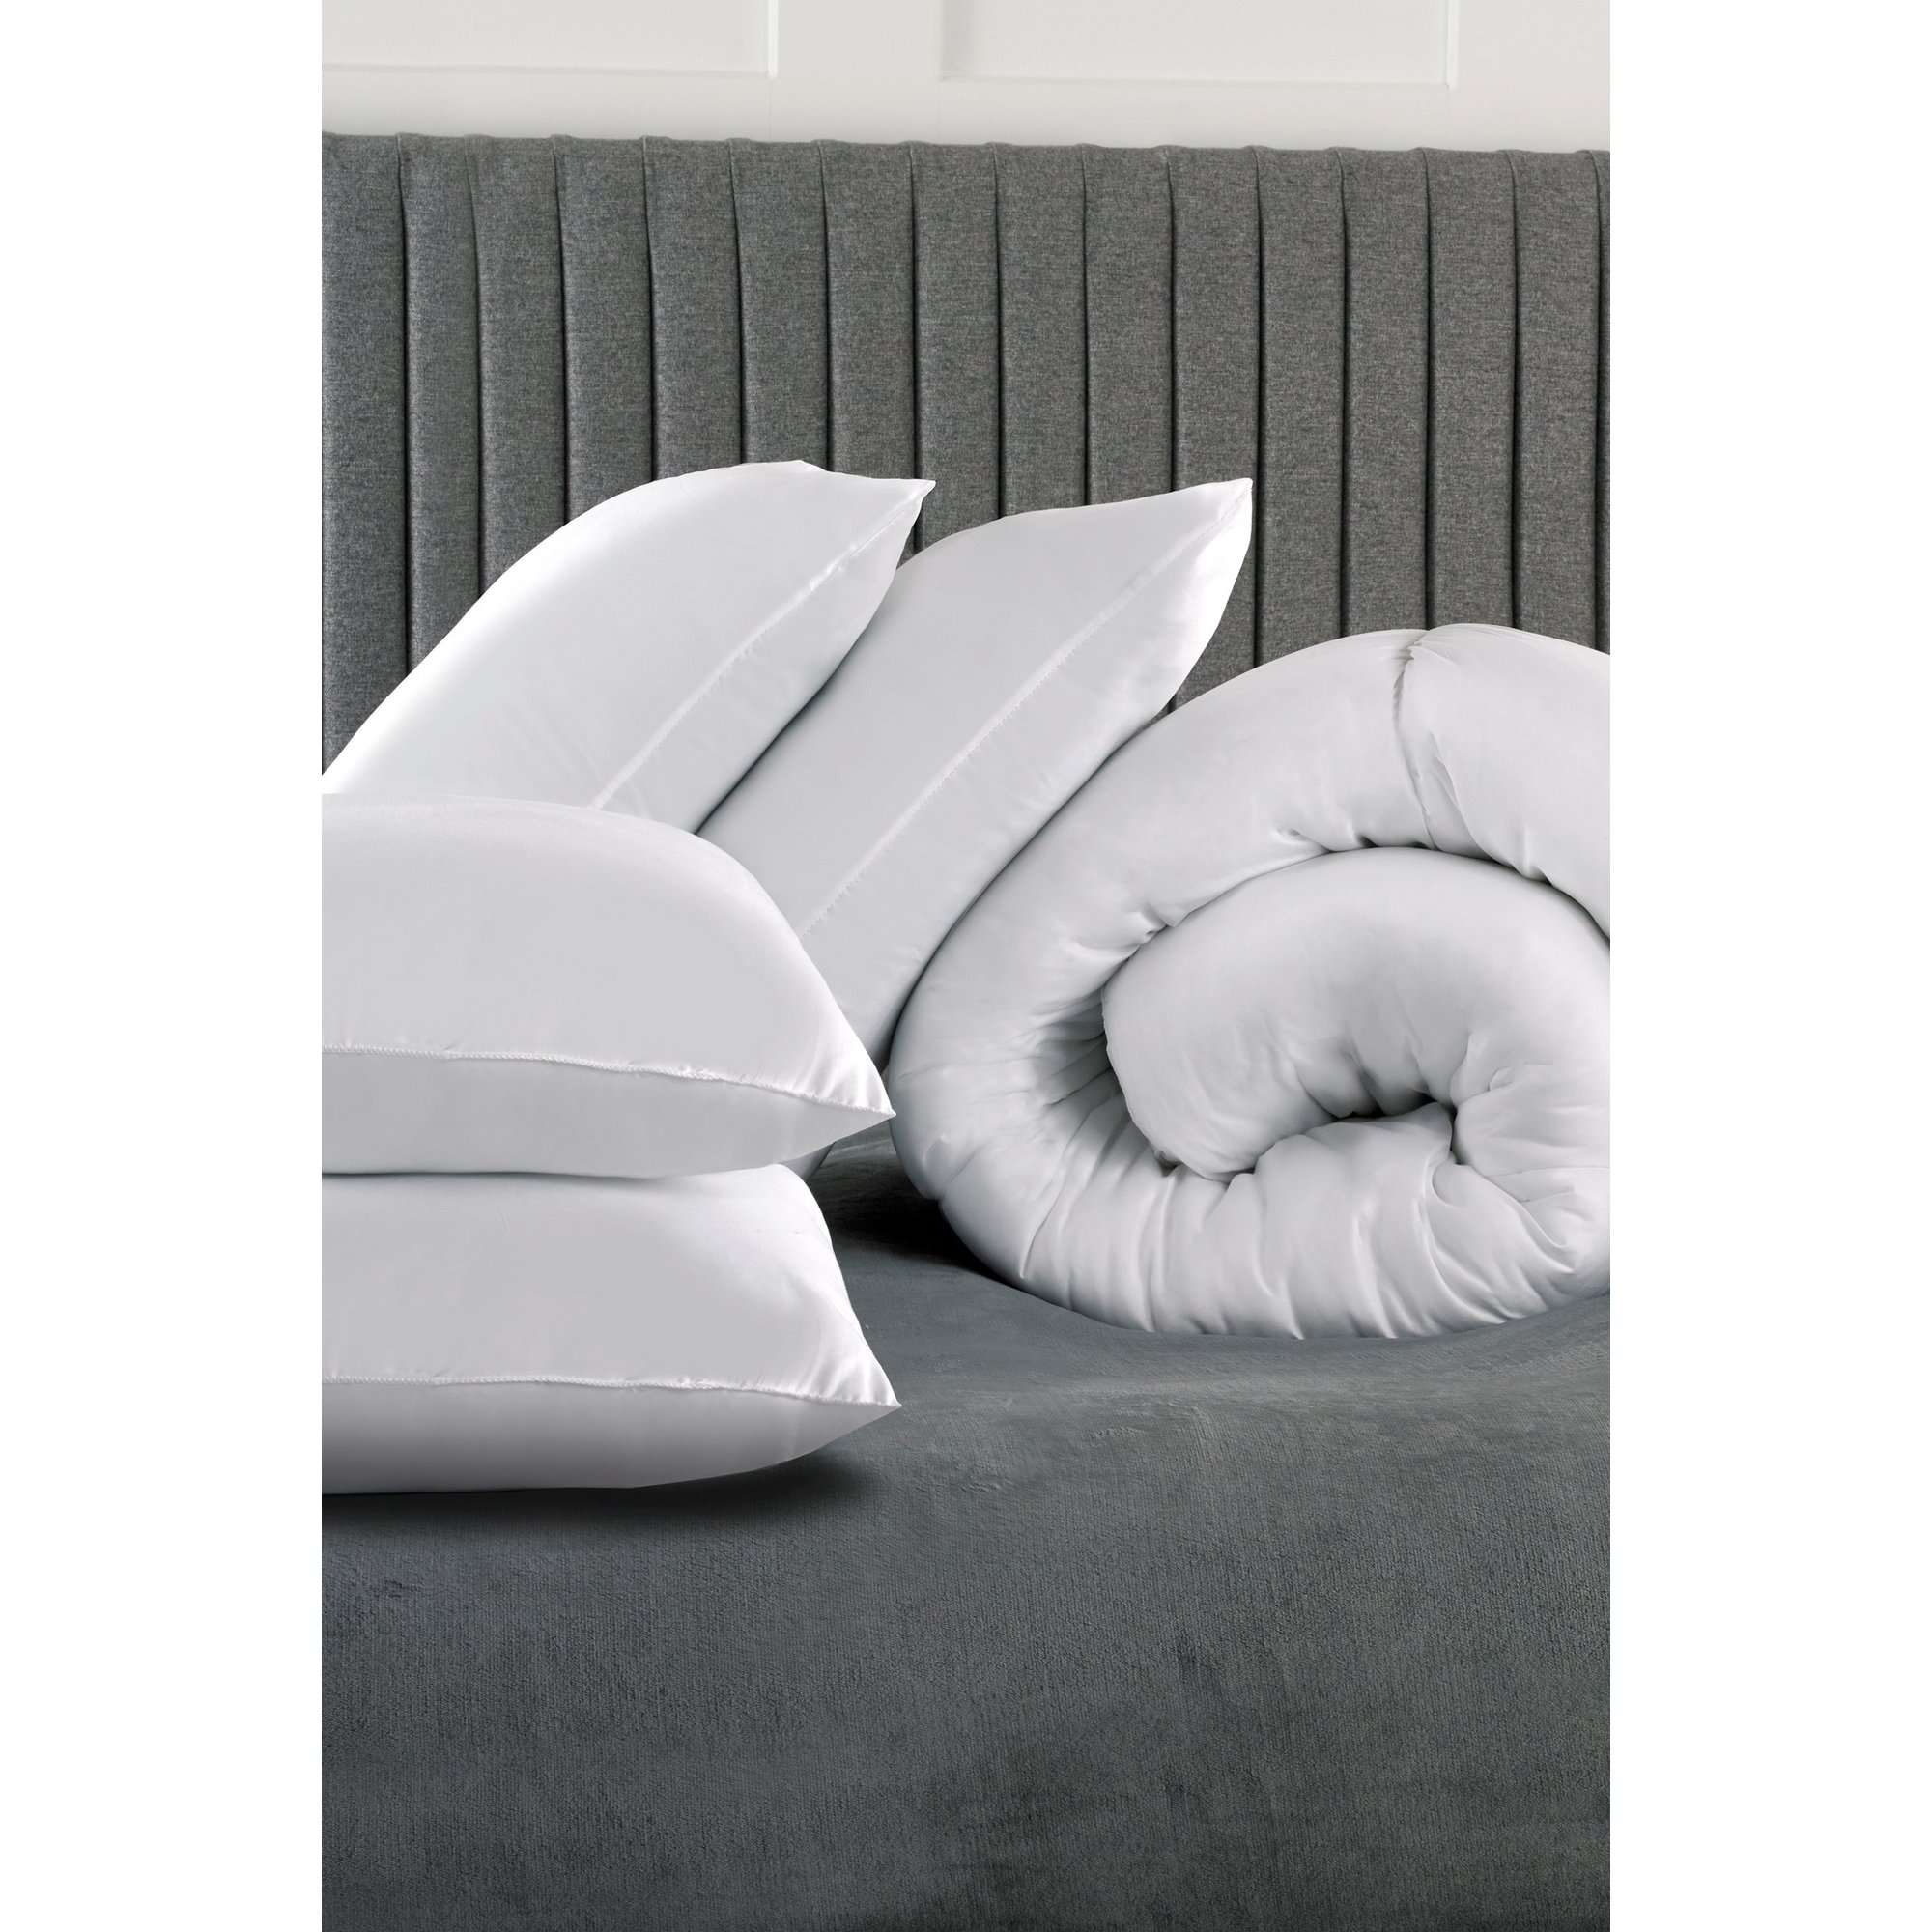 Image of Relax 10.5 Tog Duvet and 4 Pillows Bundle